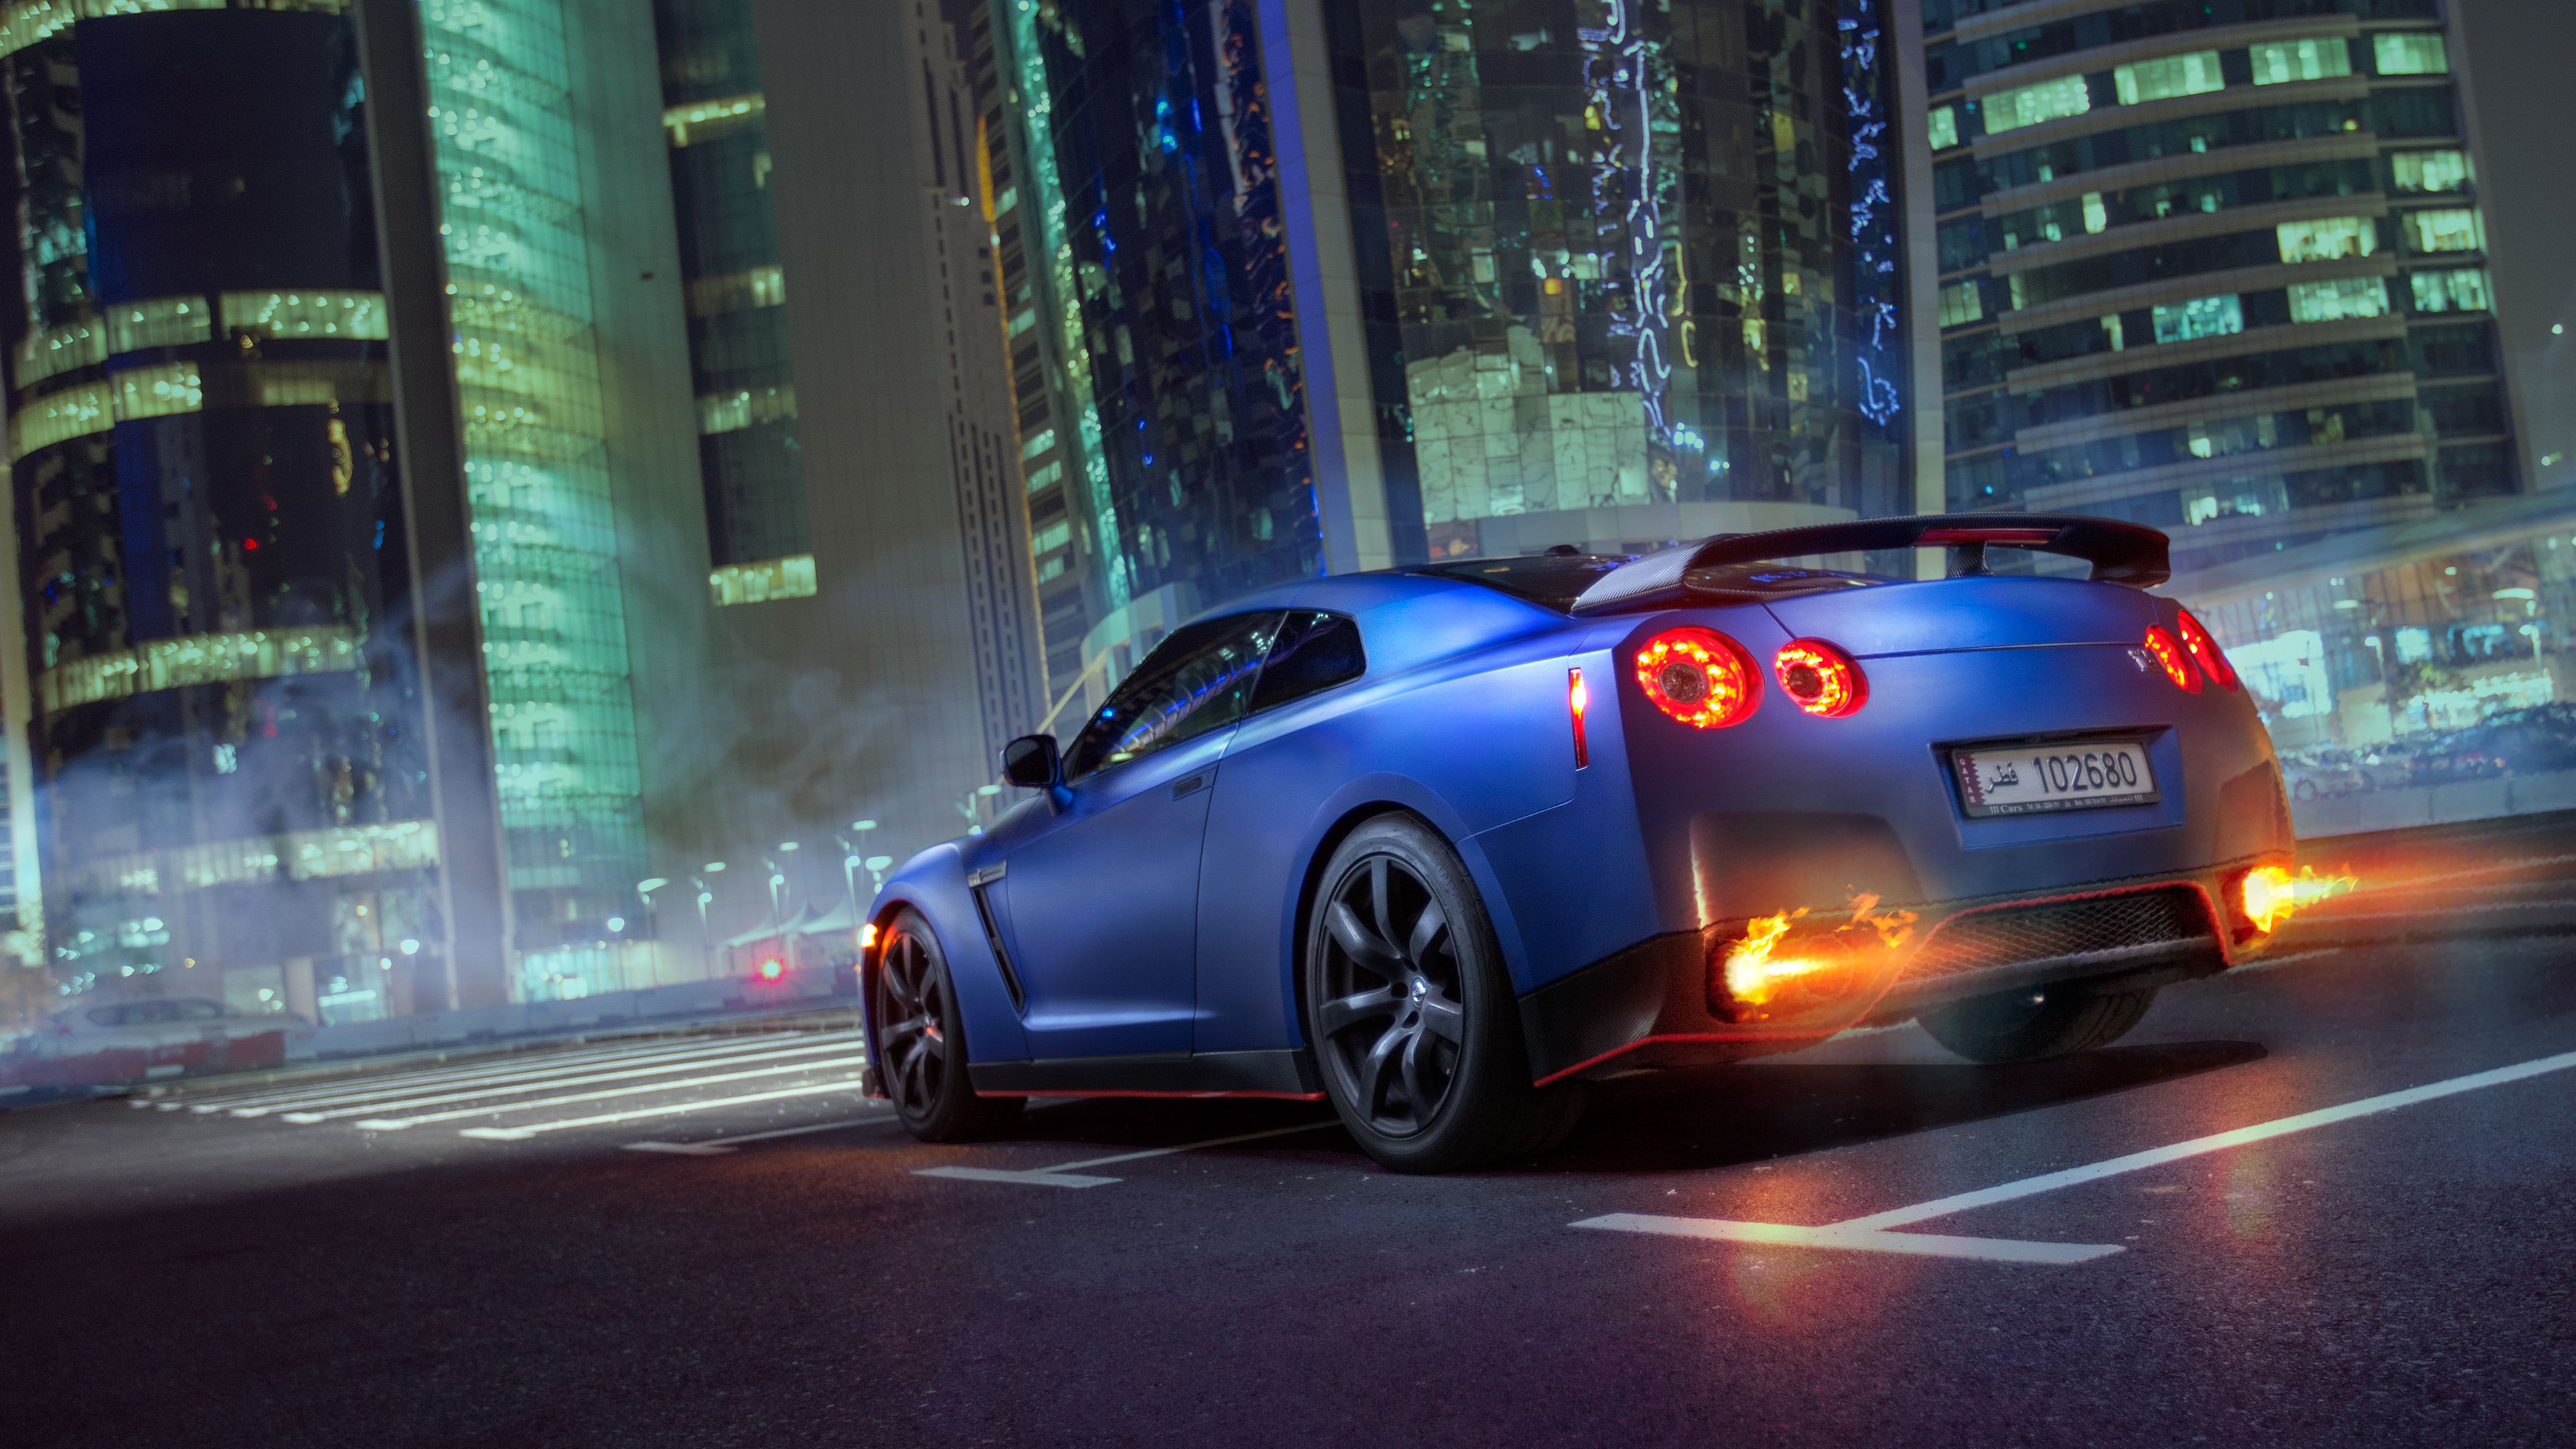 The images of the car in this application depicts the royal and luxury looks of cars which can be used in the smartphones Car Wallpaper 4k Skyline